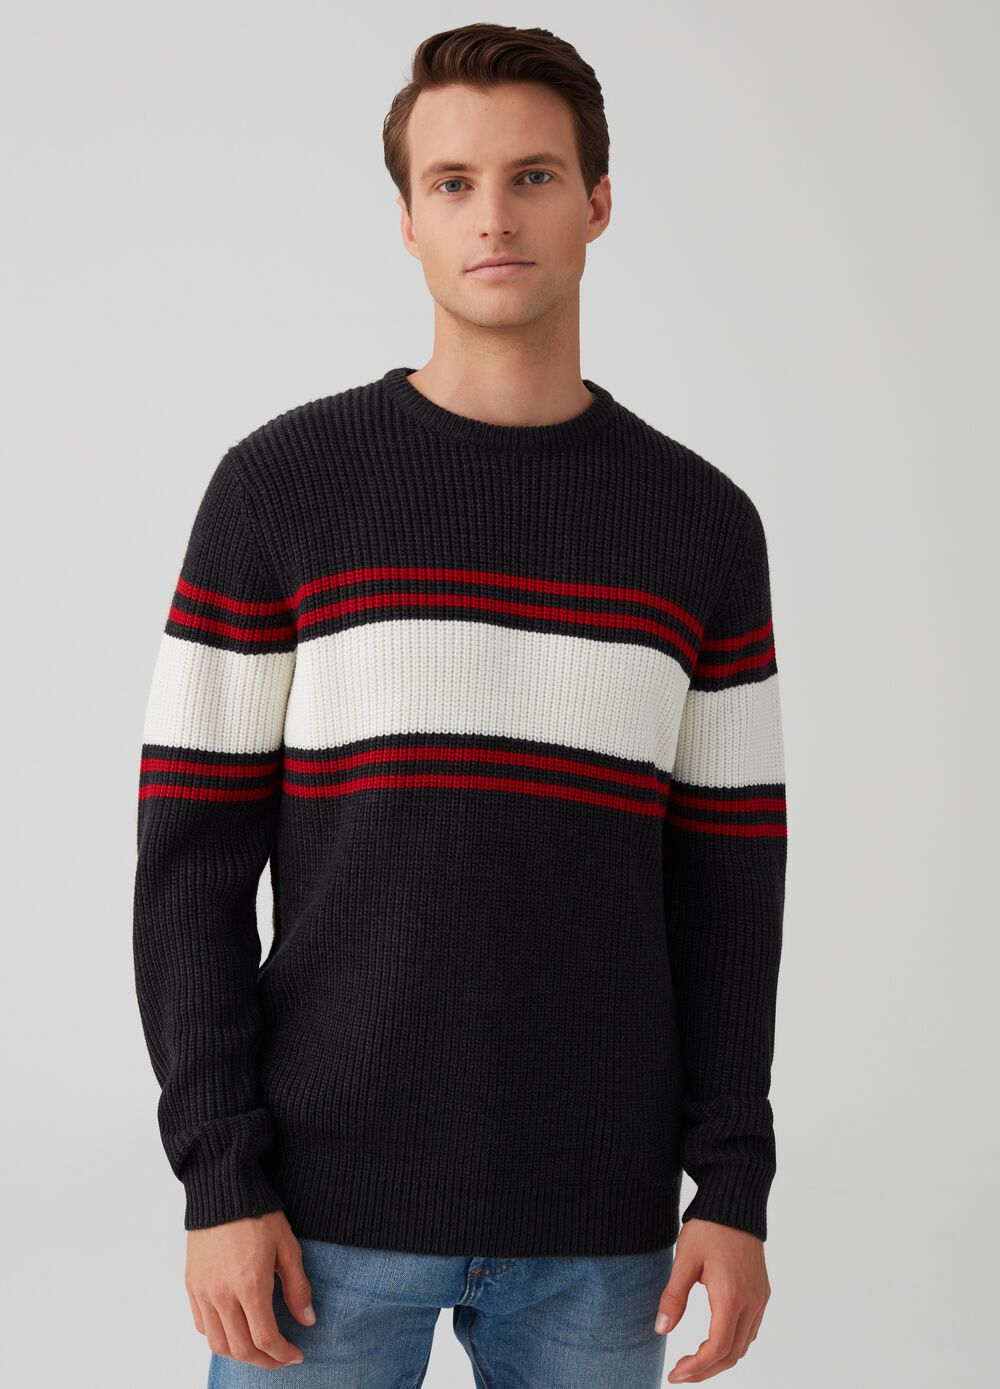 Striped weave pullover with striped pattern